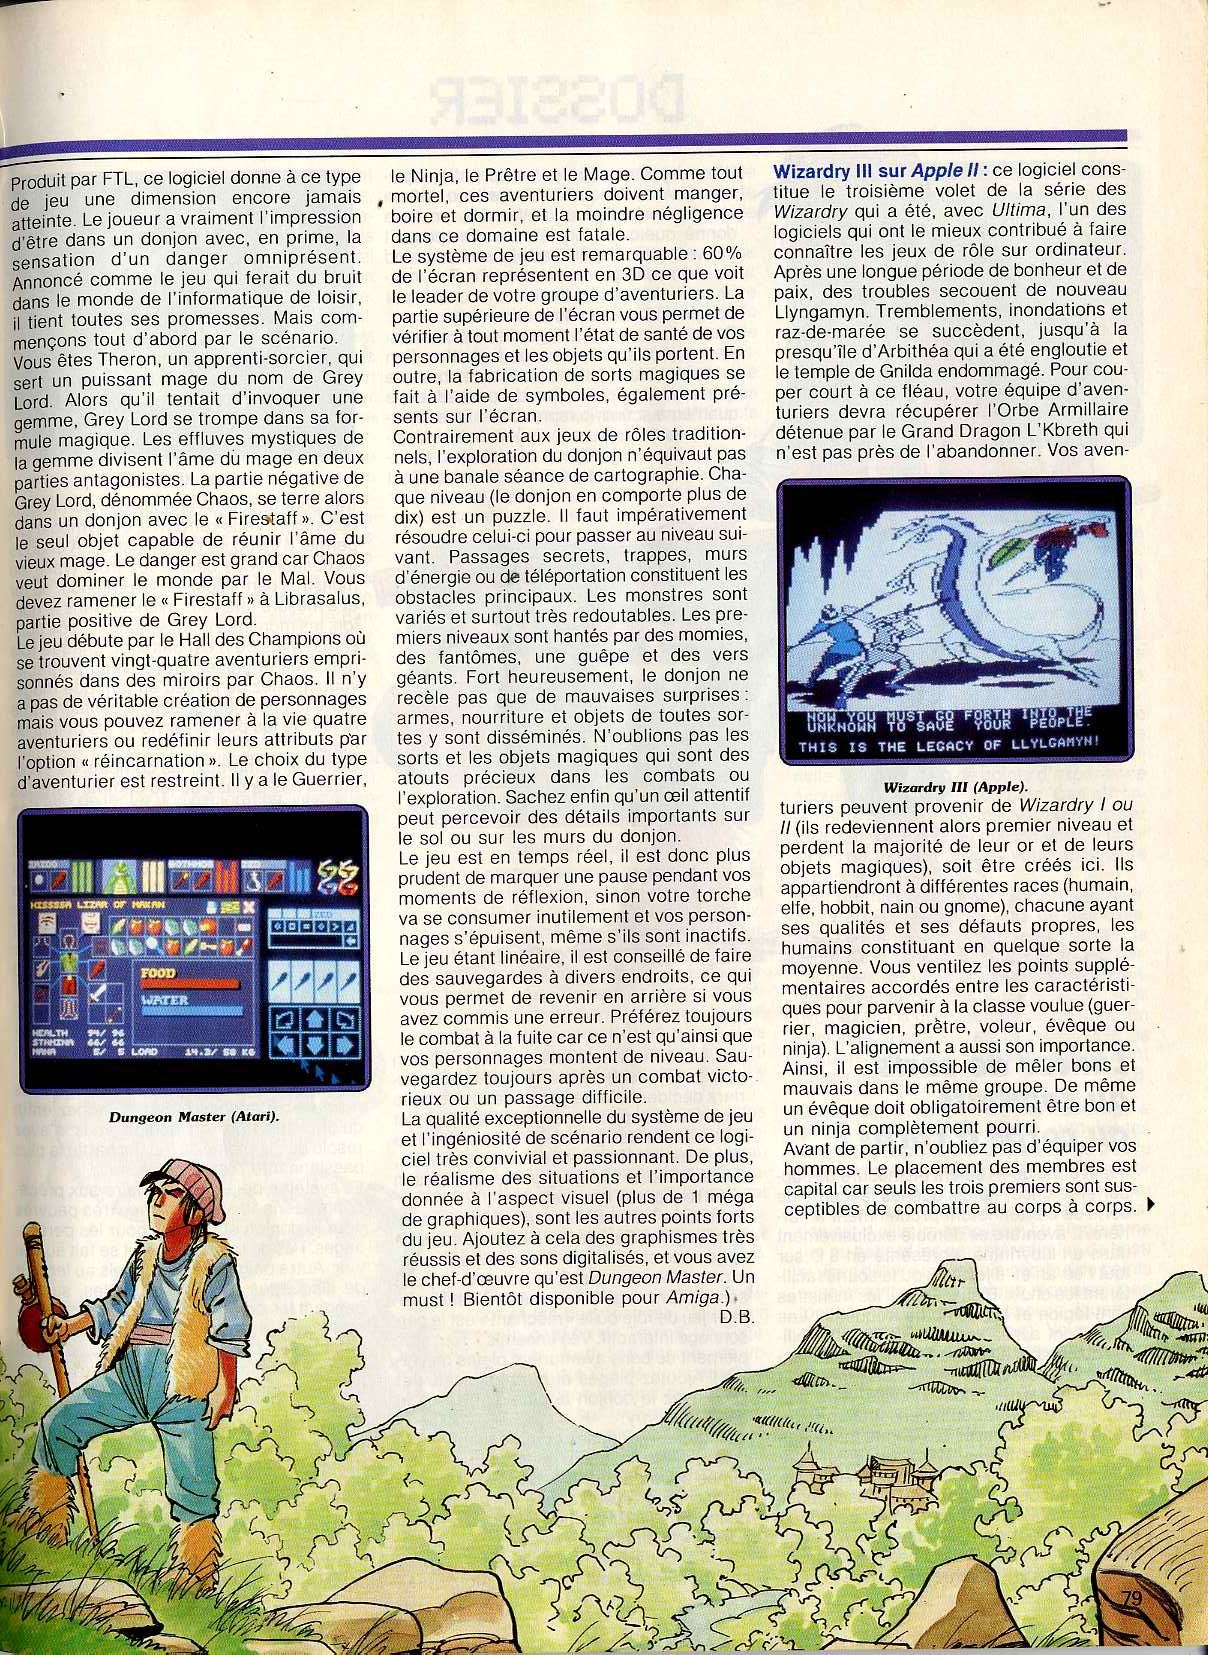 Dungeon Master for Atari ST Article published in French magazine 'Tilt', Issue #53 April 1988, Page 79